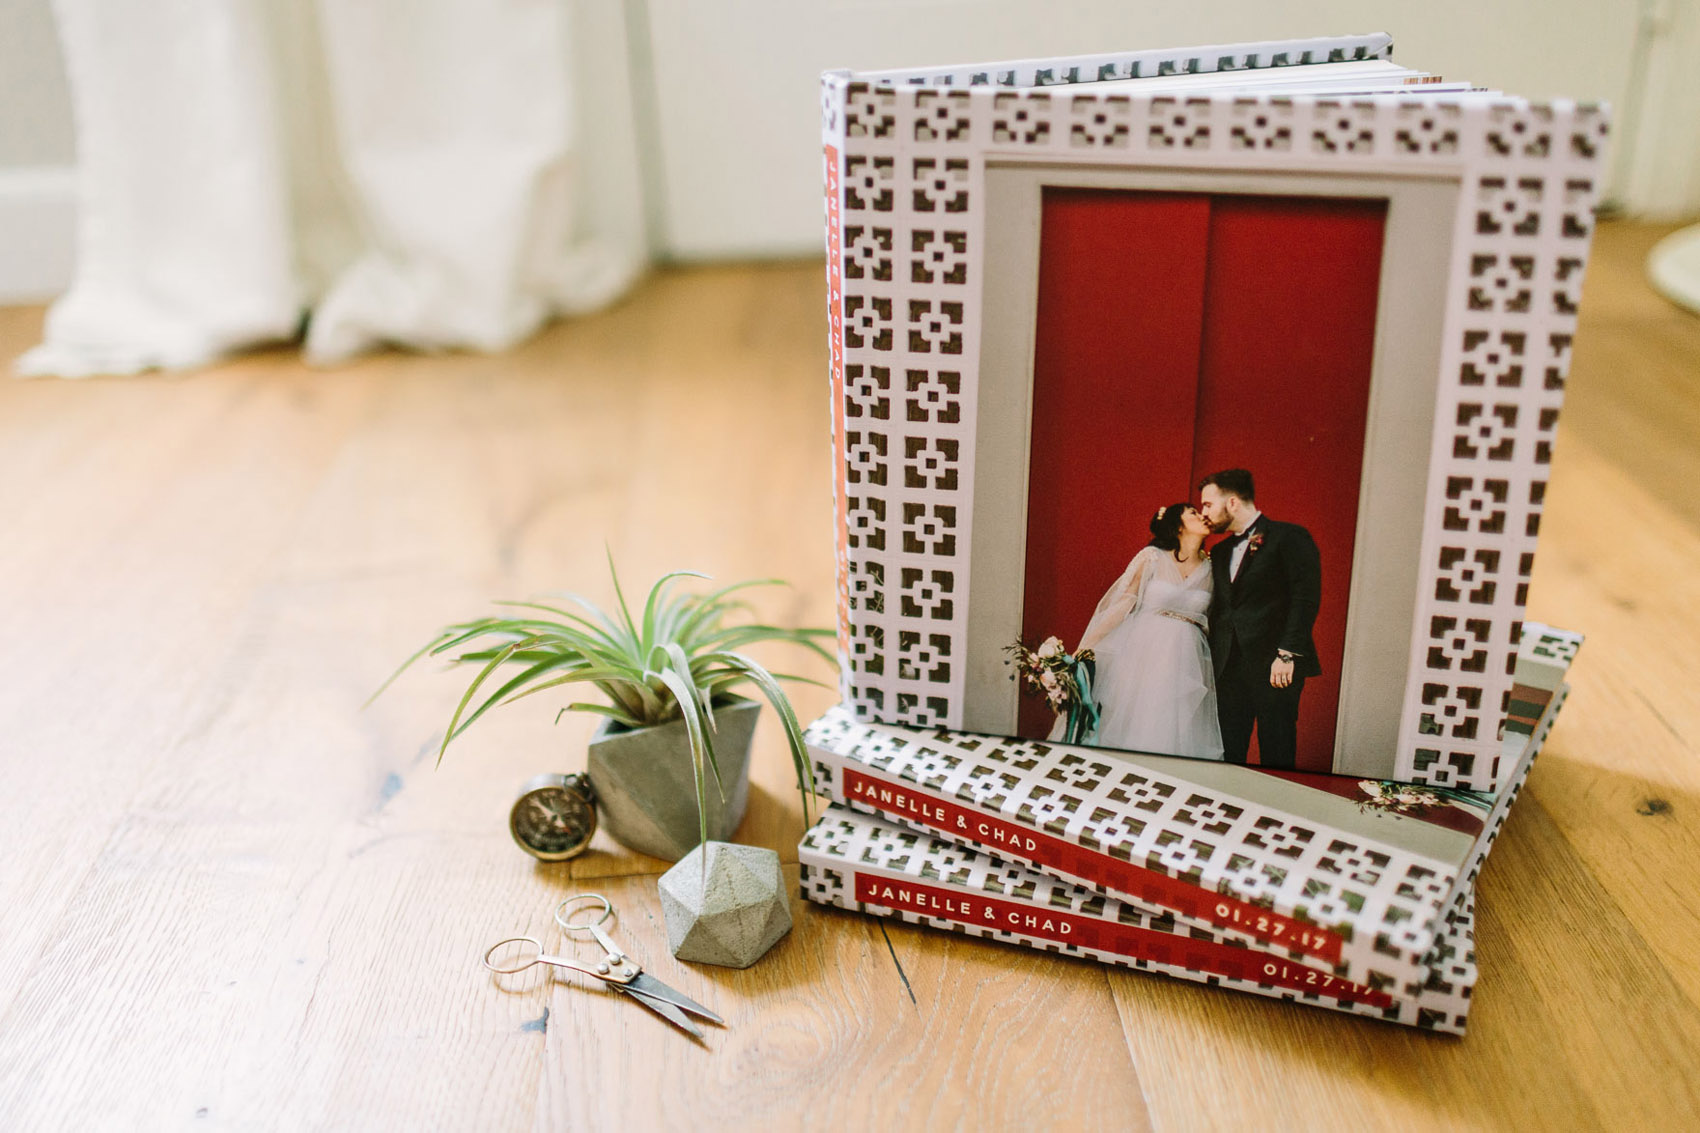 JANELLE & CHAD: THE PARKER, PALM SPRINGS, CA